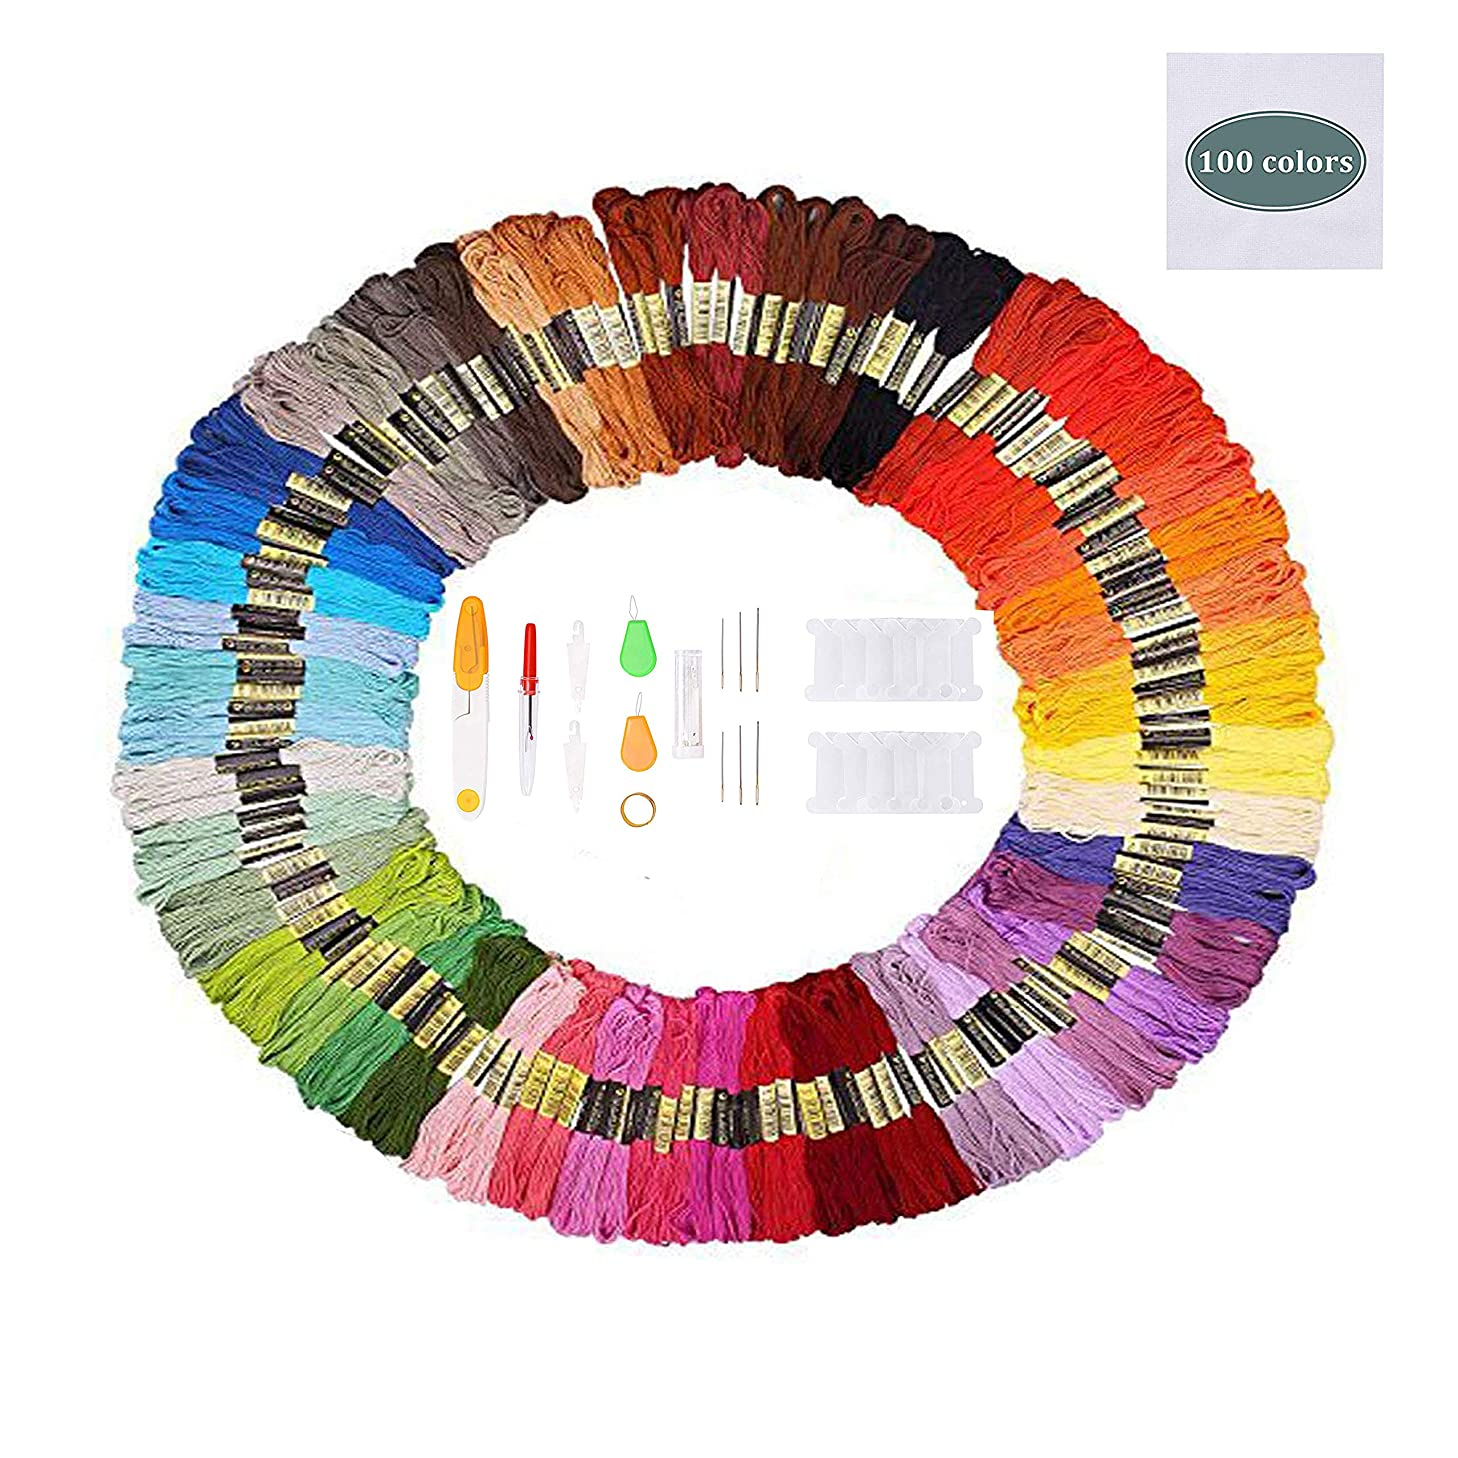 ZHAOER Embroidery Thread Floss - Friendship Bracelet String - 100 Skeins Per Pack w/Set of Embroidery Needles and Cross Stitch Tool Kits